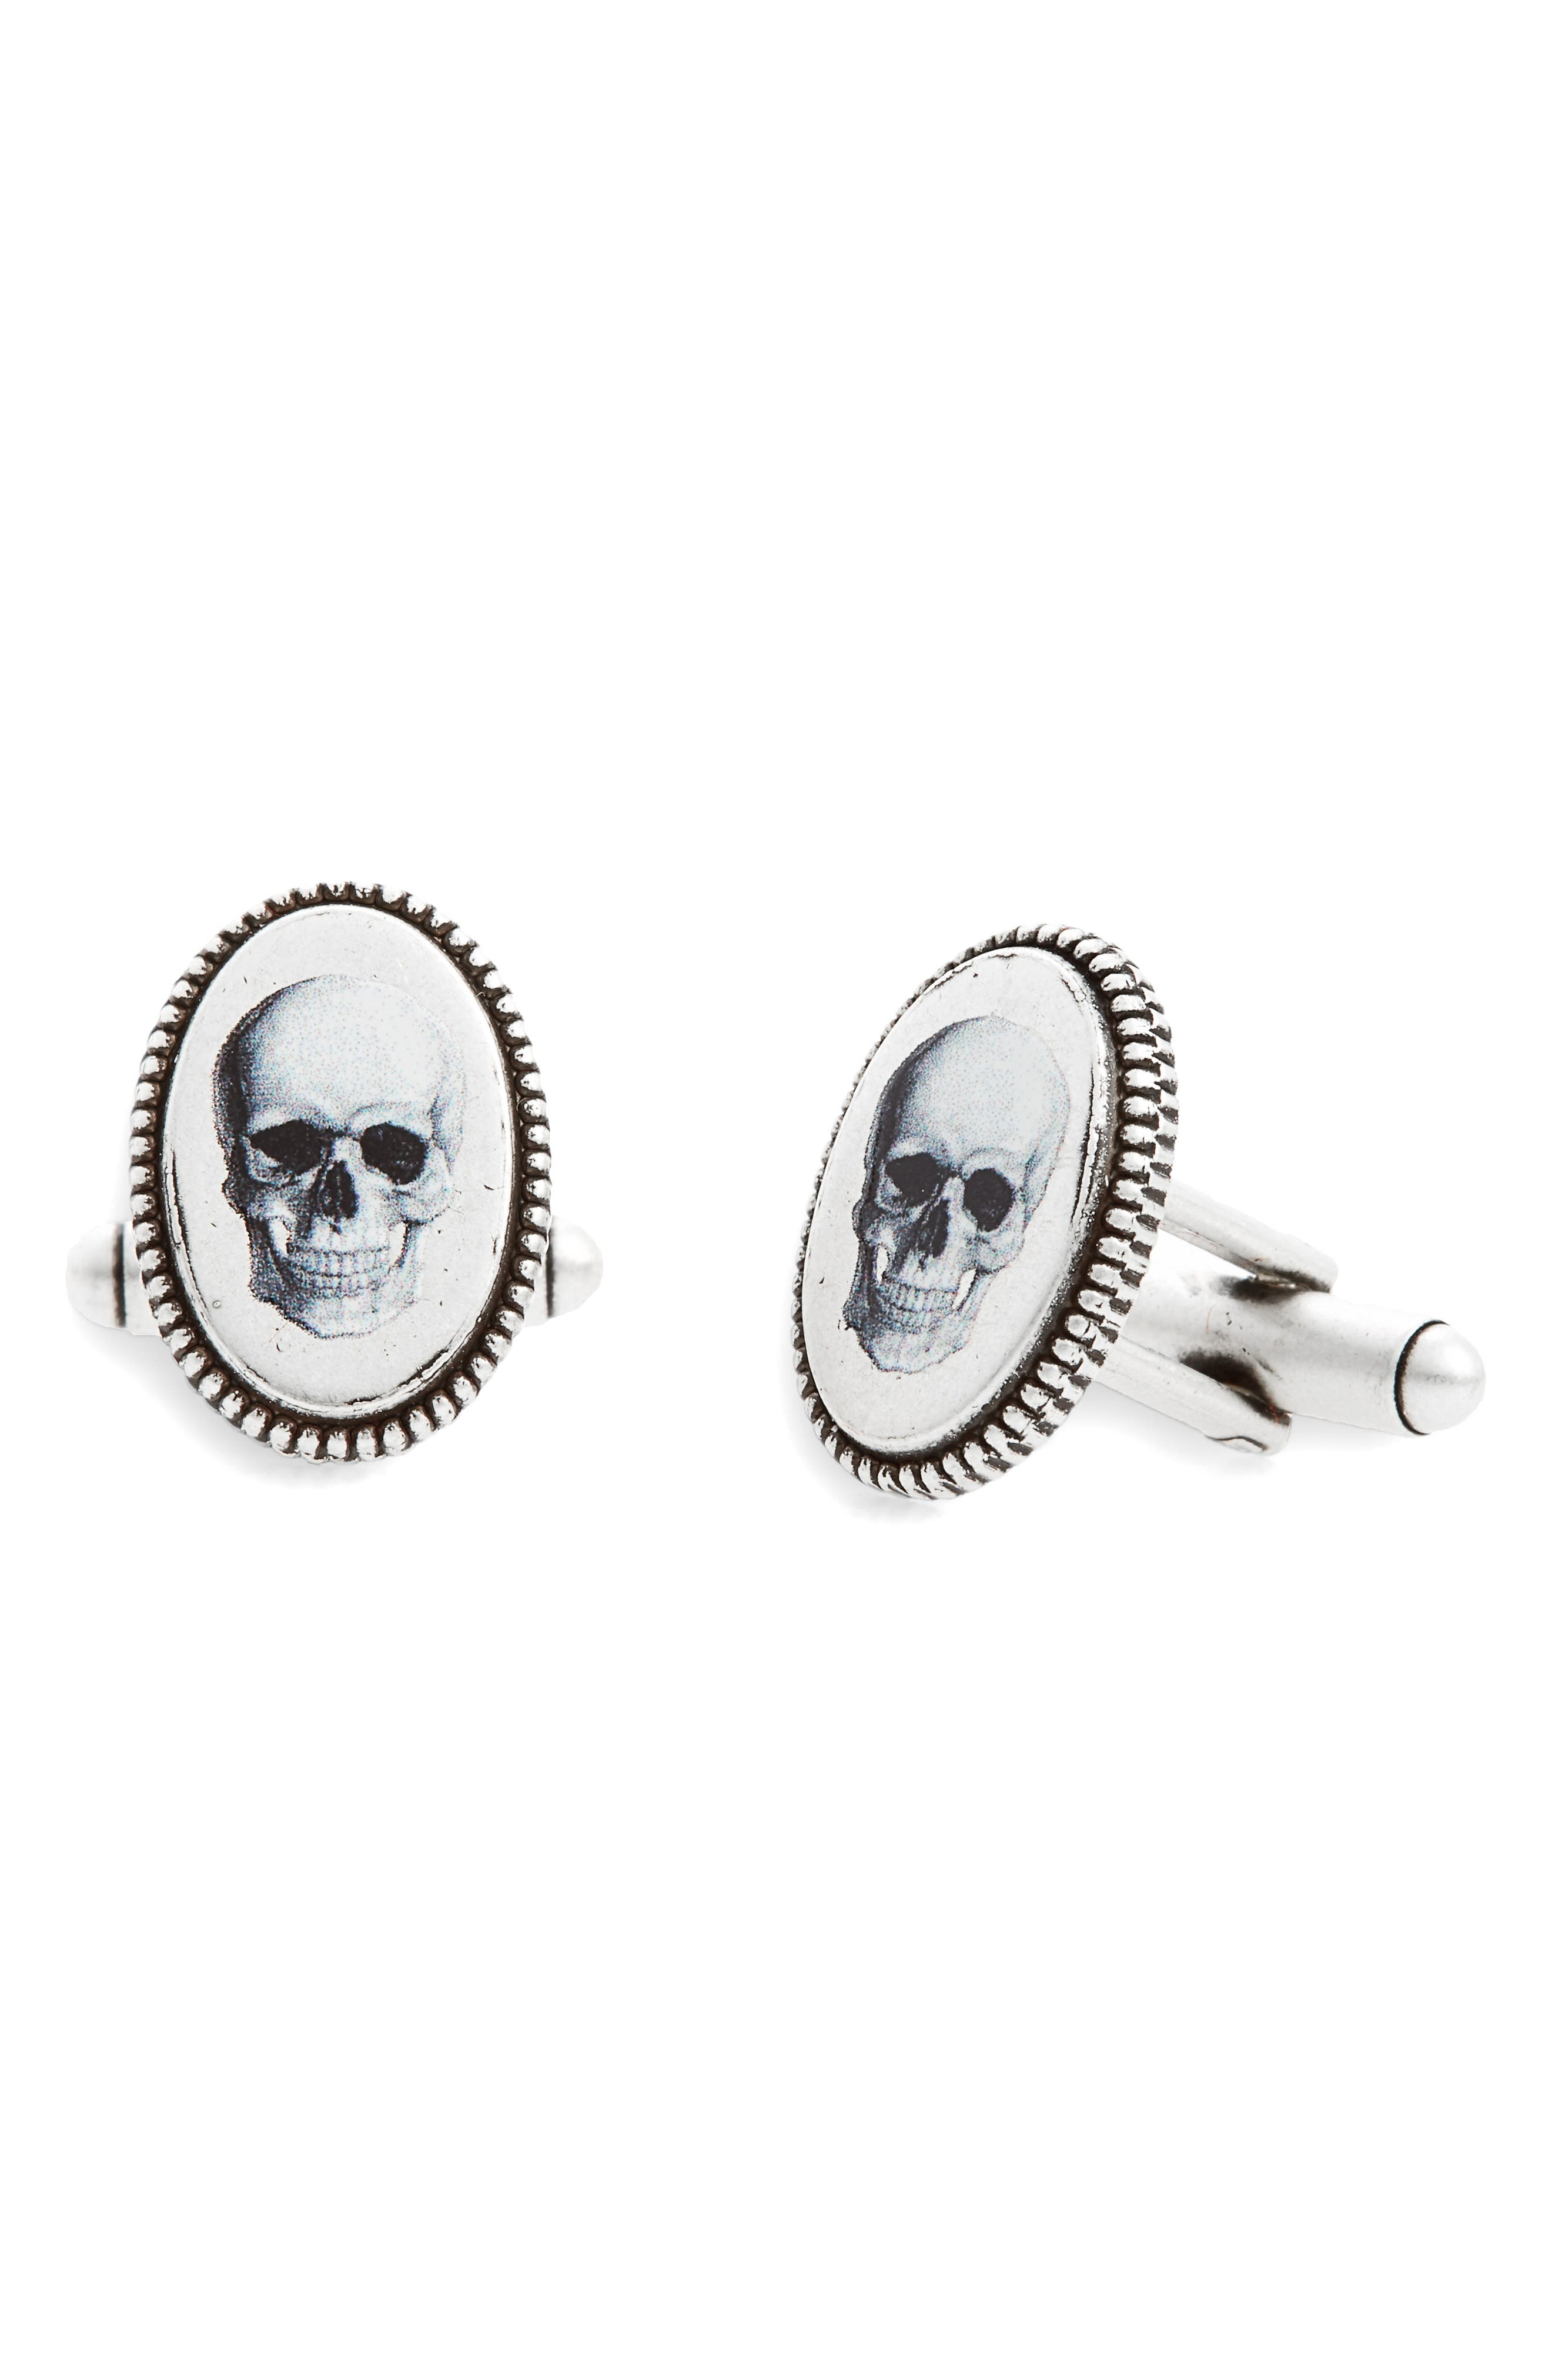 Skull Cuff Links,                         Main,                         color,